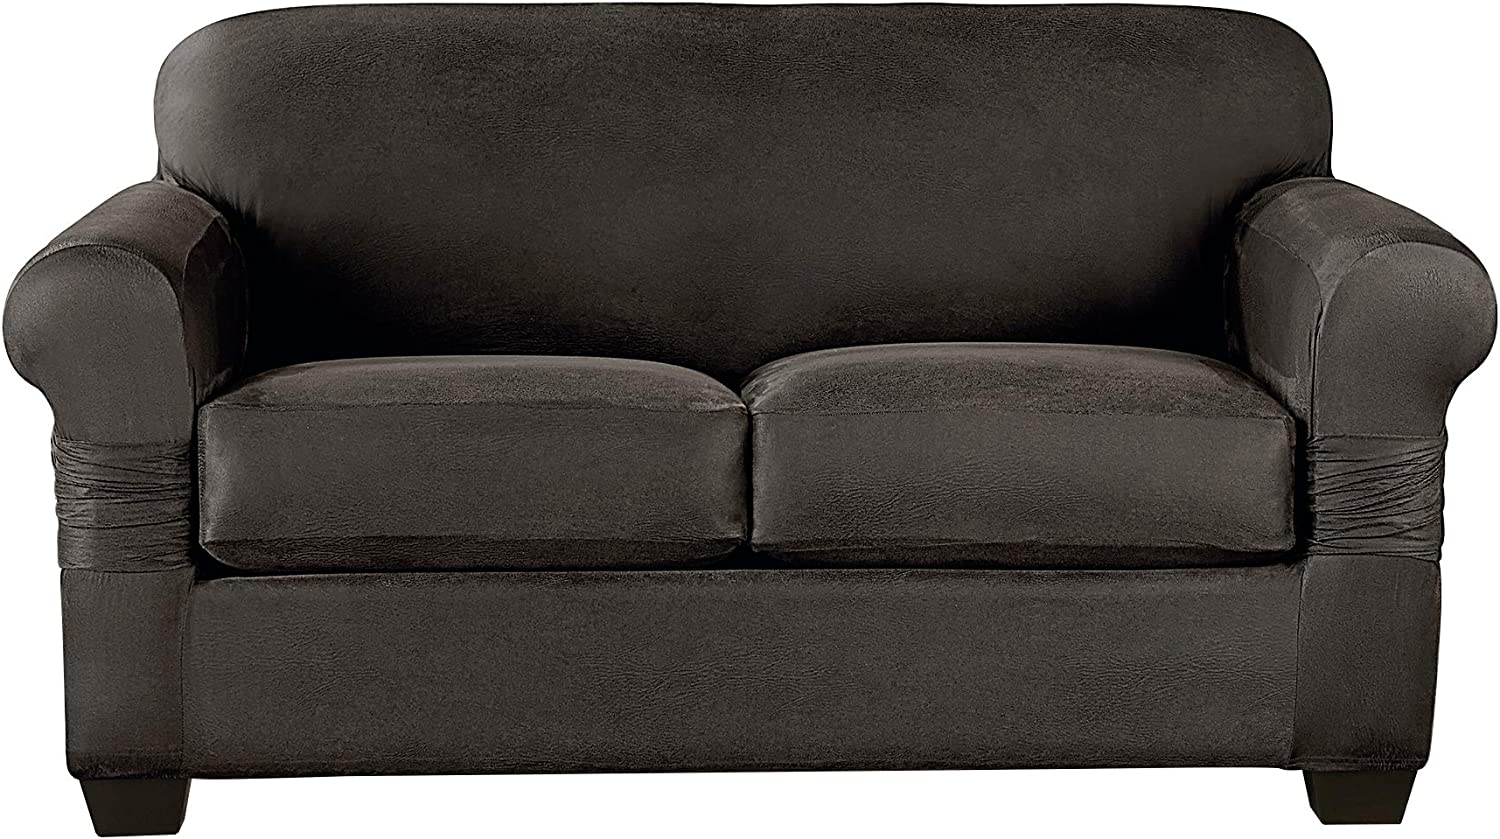 Surefit Home Décor Vintage Leather Universal Cushion Loveseat Three Piece Slipcover, Form Fit, Polyester/Spandex, Machine Washable, Gray Color